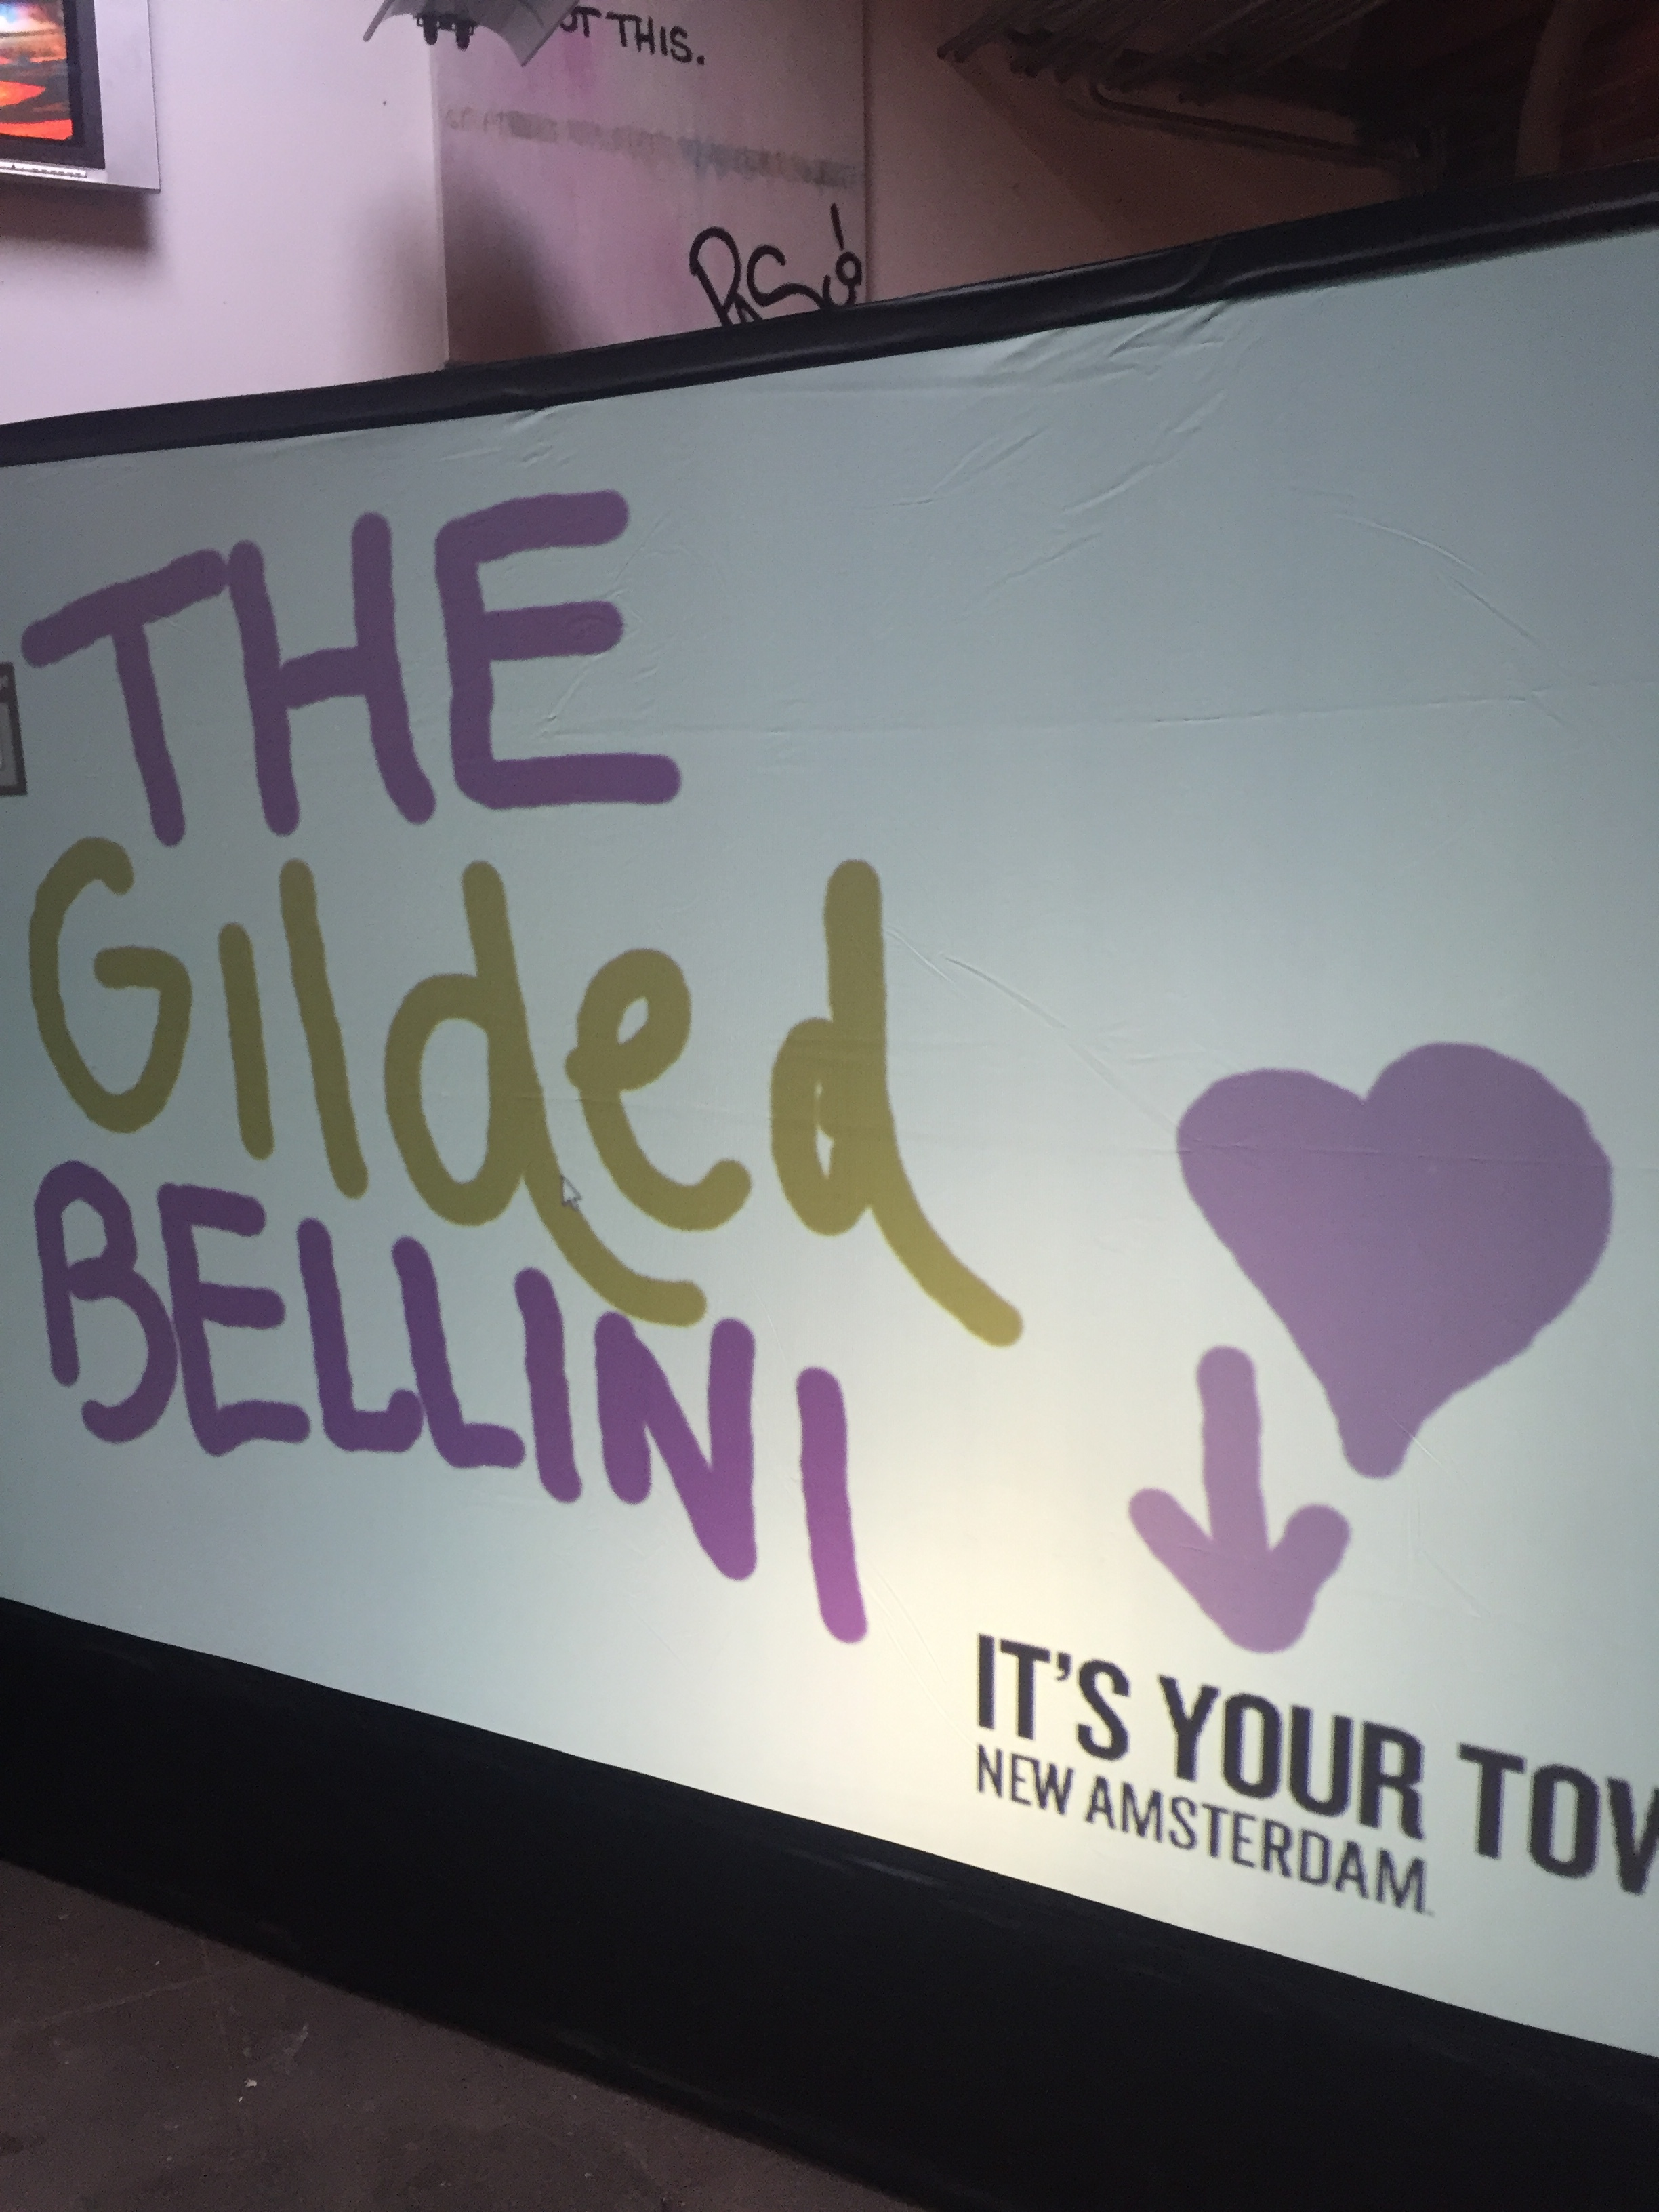 The Gilded Bellini at the New Amsterdam Vodka It's Your Town Event